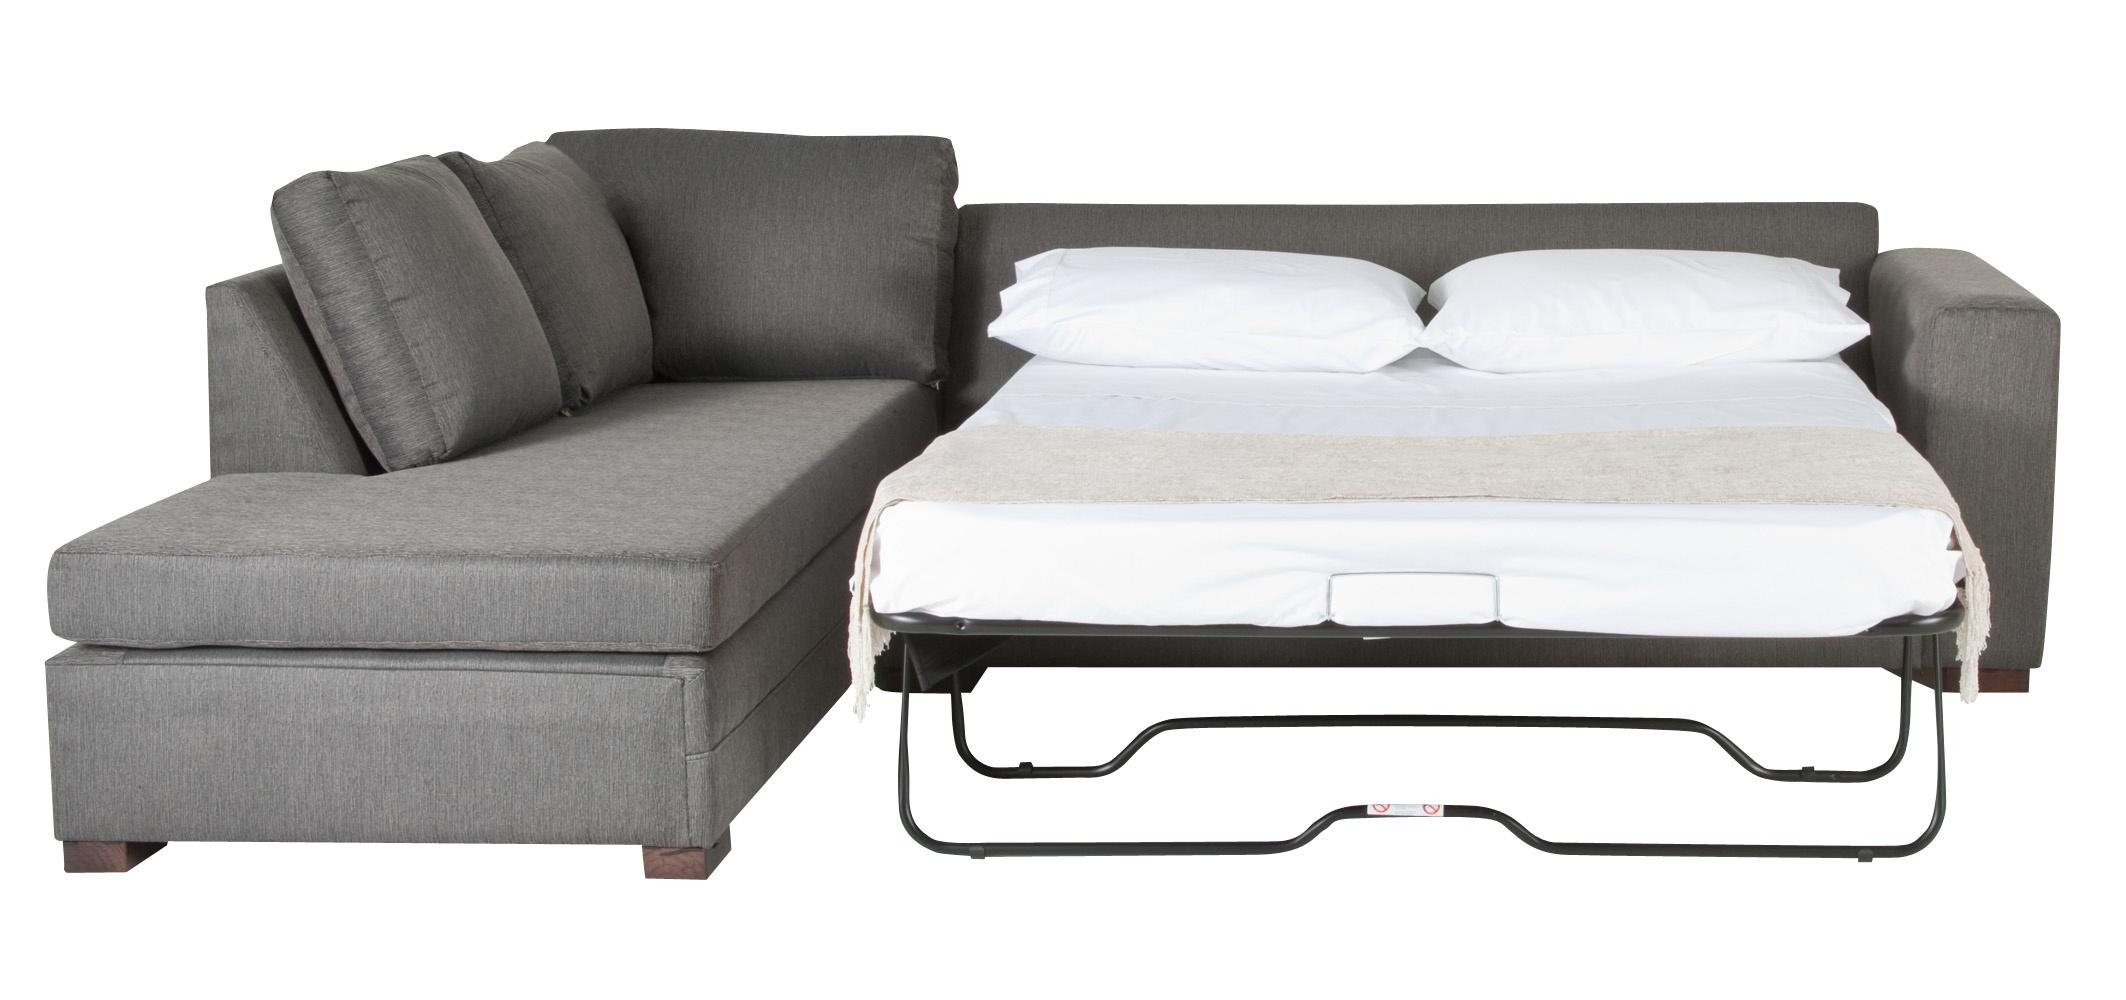 Inspirational Castro Convertible Sofa Bed 61 For Your Sofa Design Inside Castro Convertible Couches (View 14 of 20)